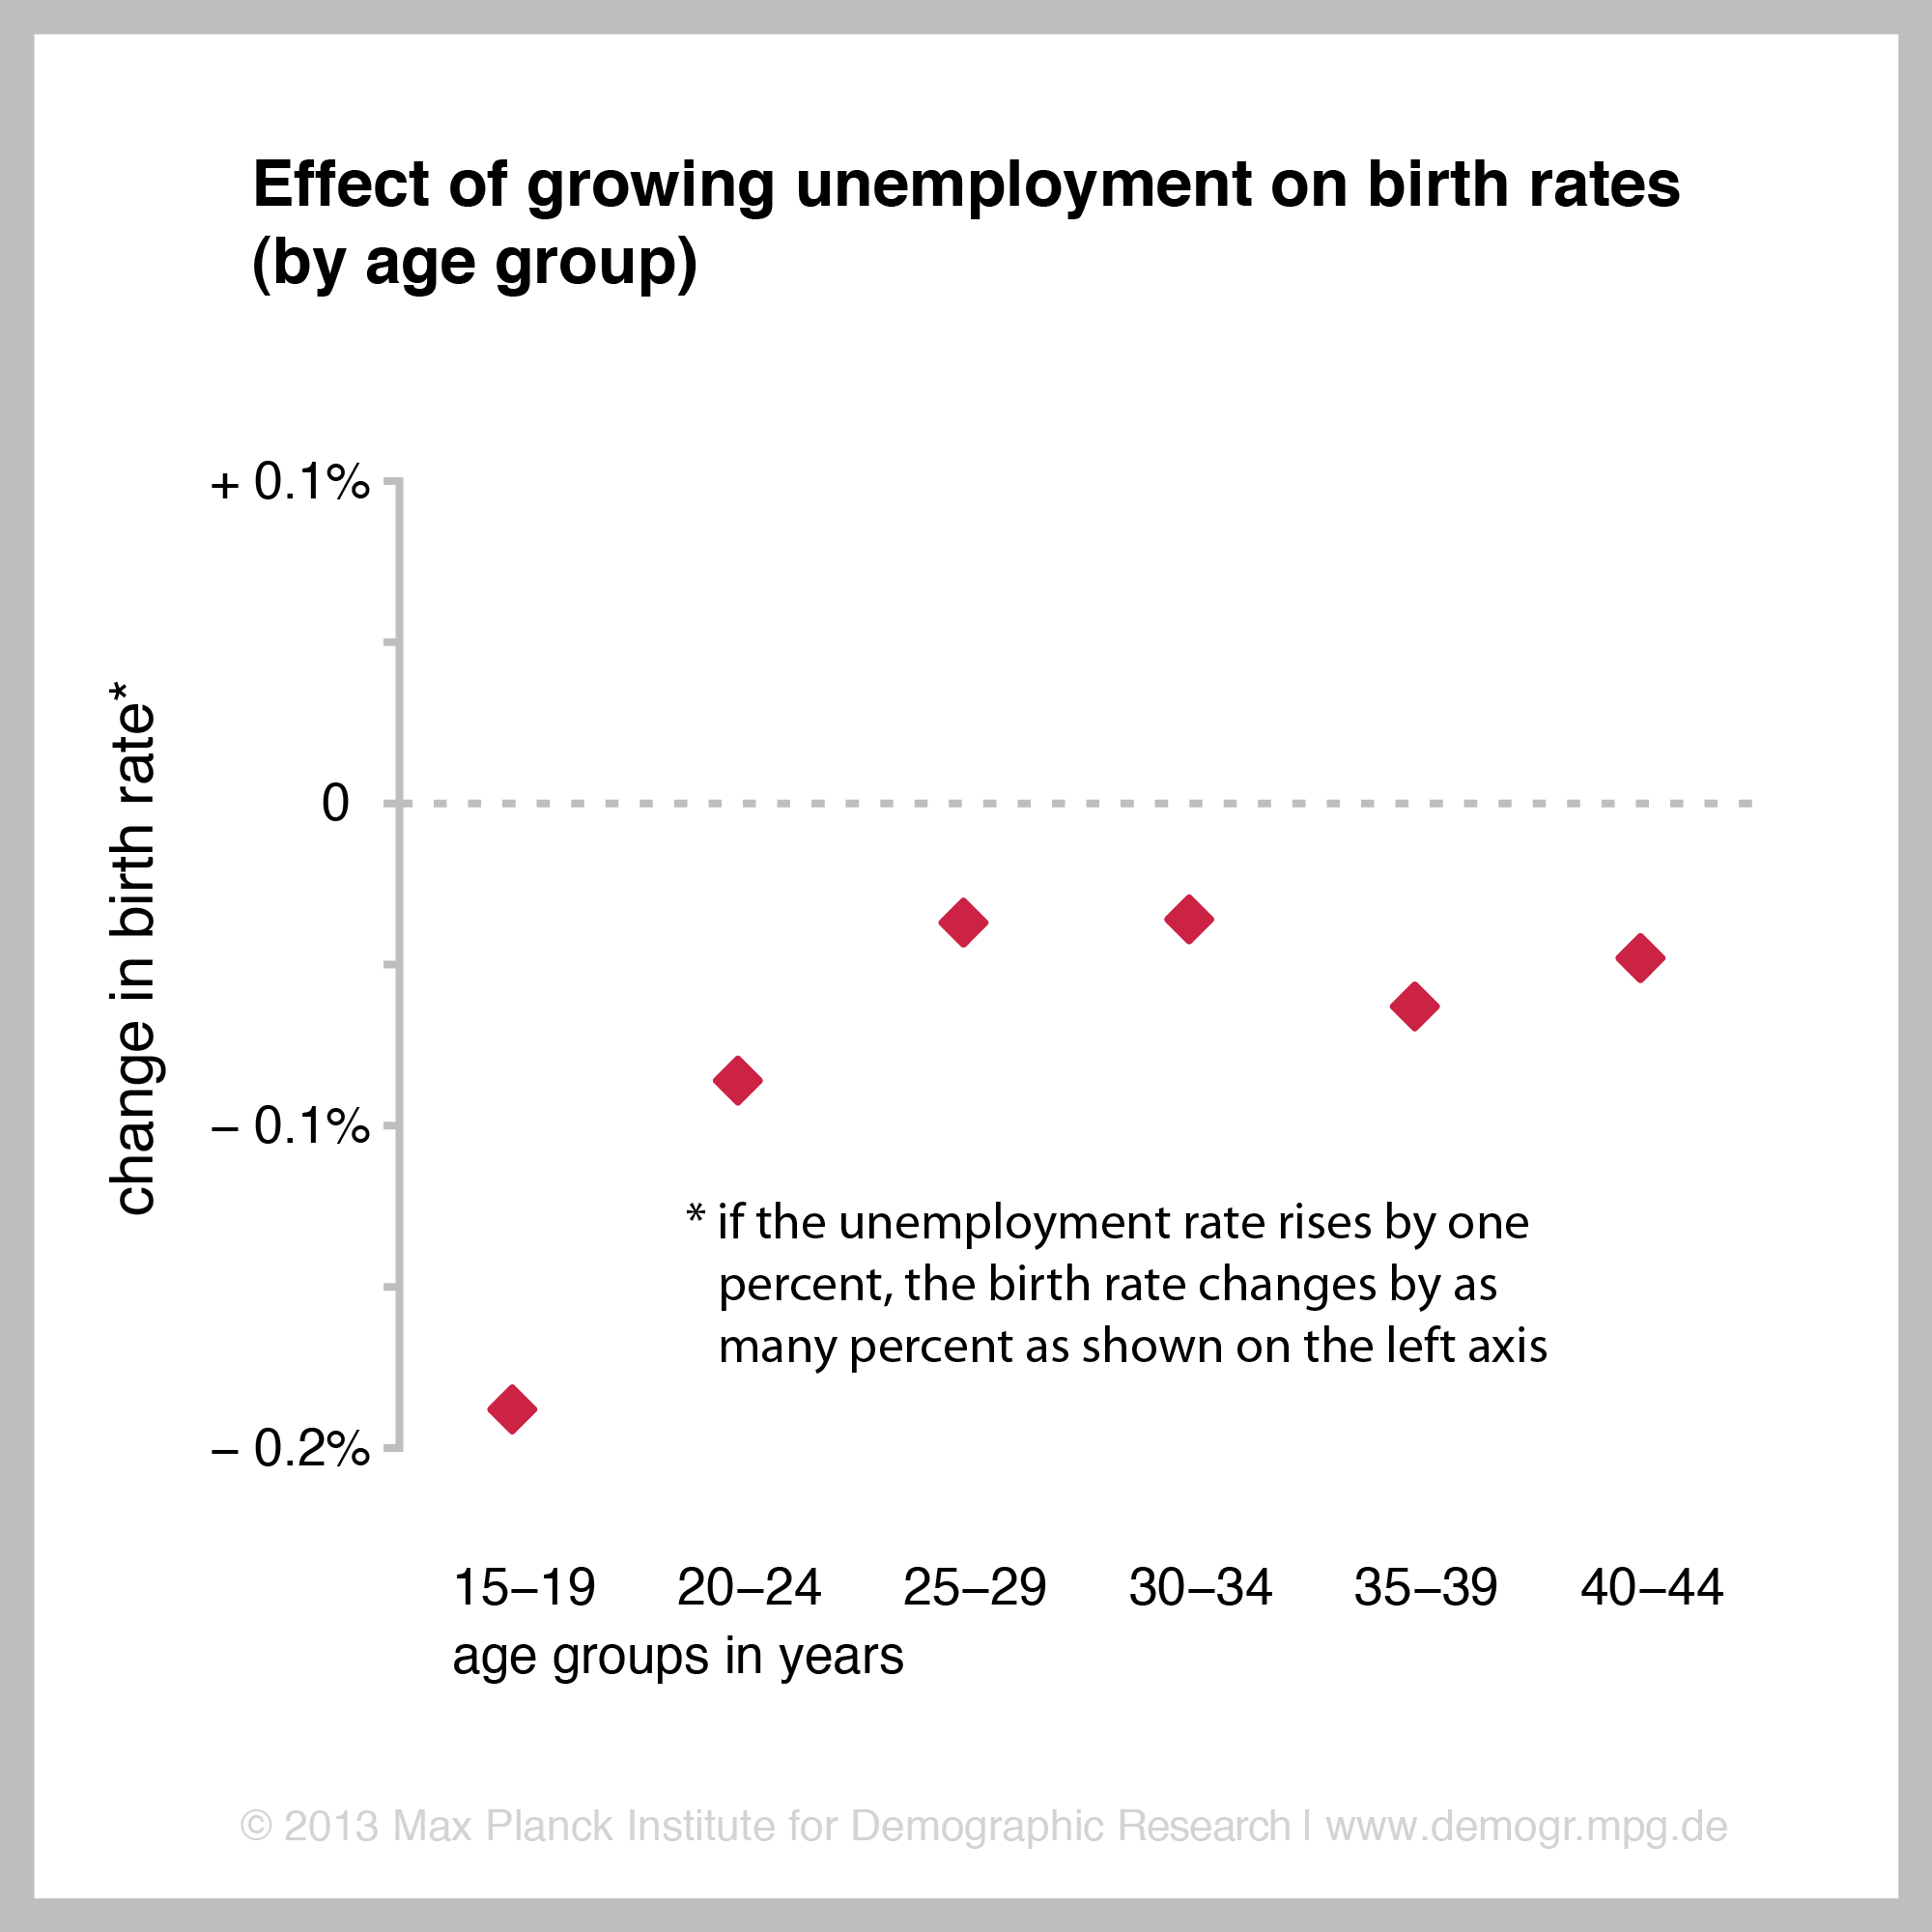 mpidr economic crisis lowers birth rates figure effect of growing unemployment on birth rates png